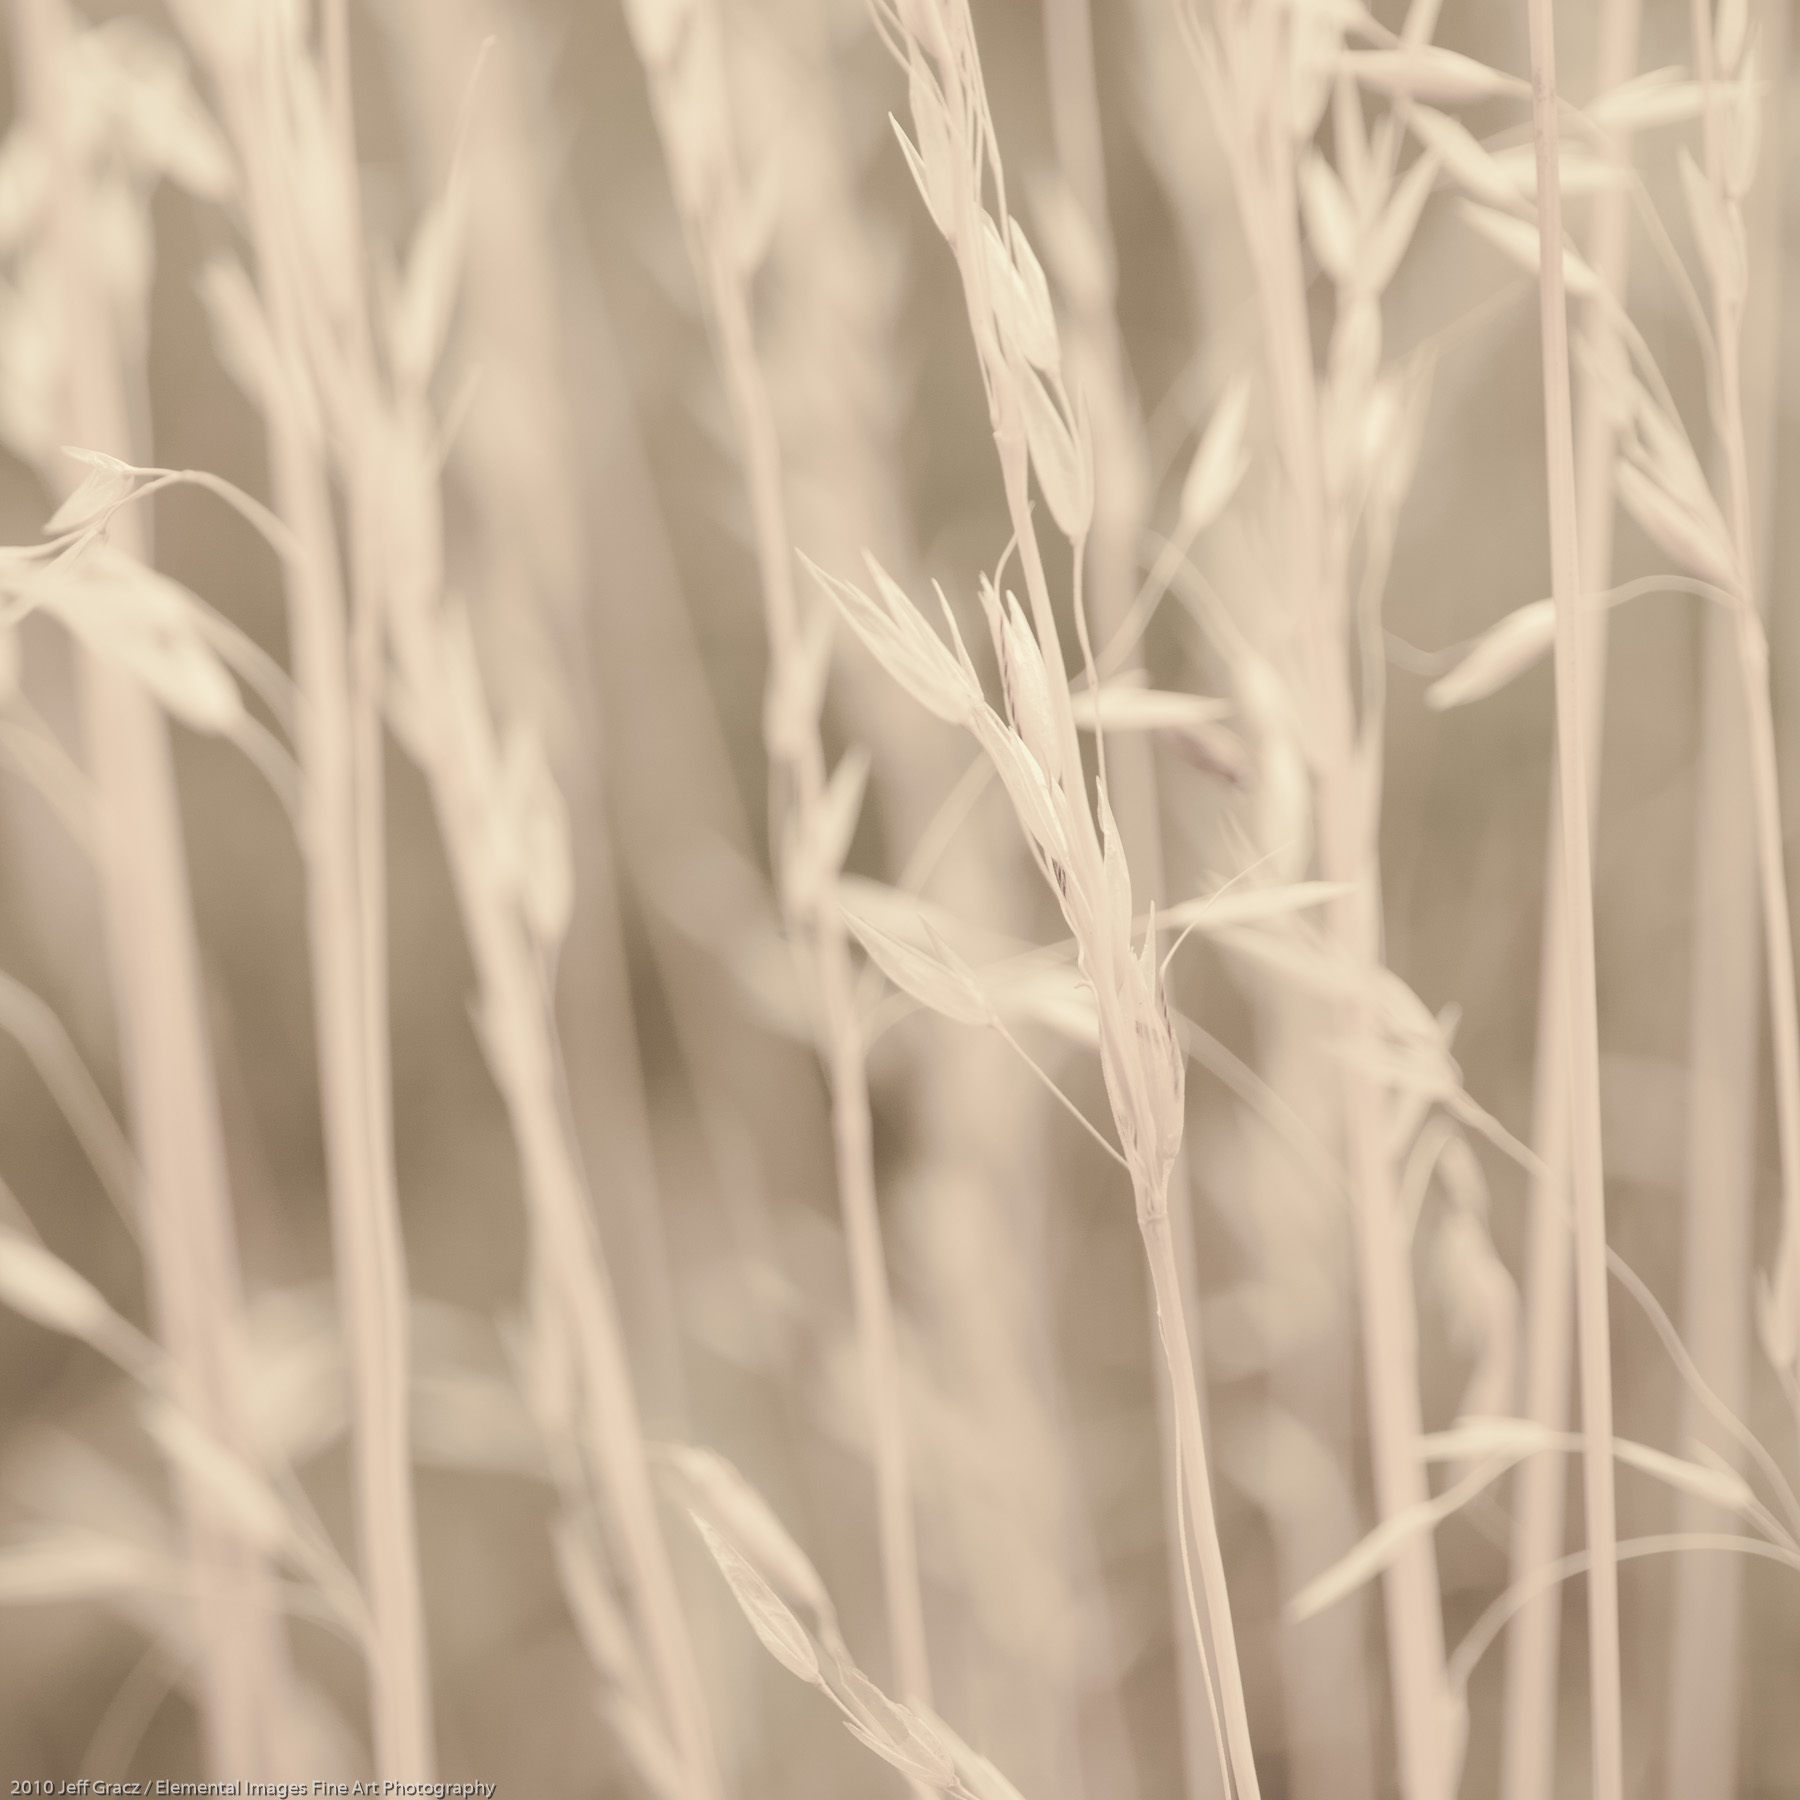 Grasses VI | Portland | OR | USA - © 2010 Jeff Gracz / Elemental Images Fine Art Photography - All Rights Reserved Worldwide